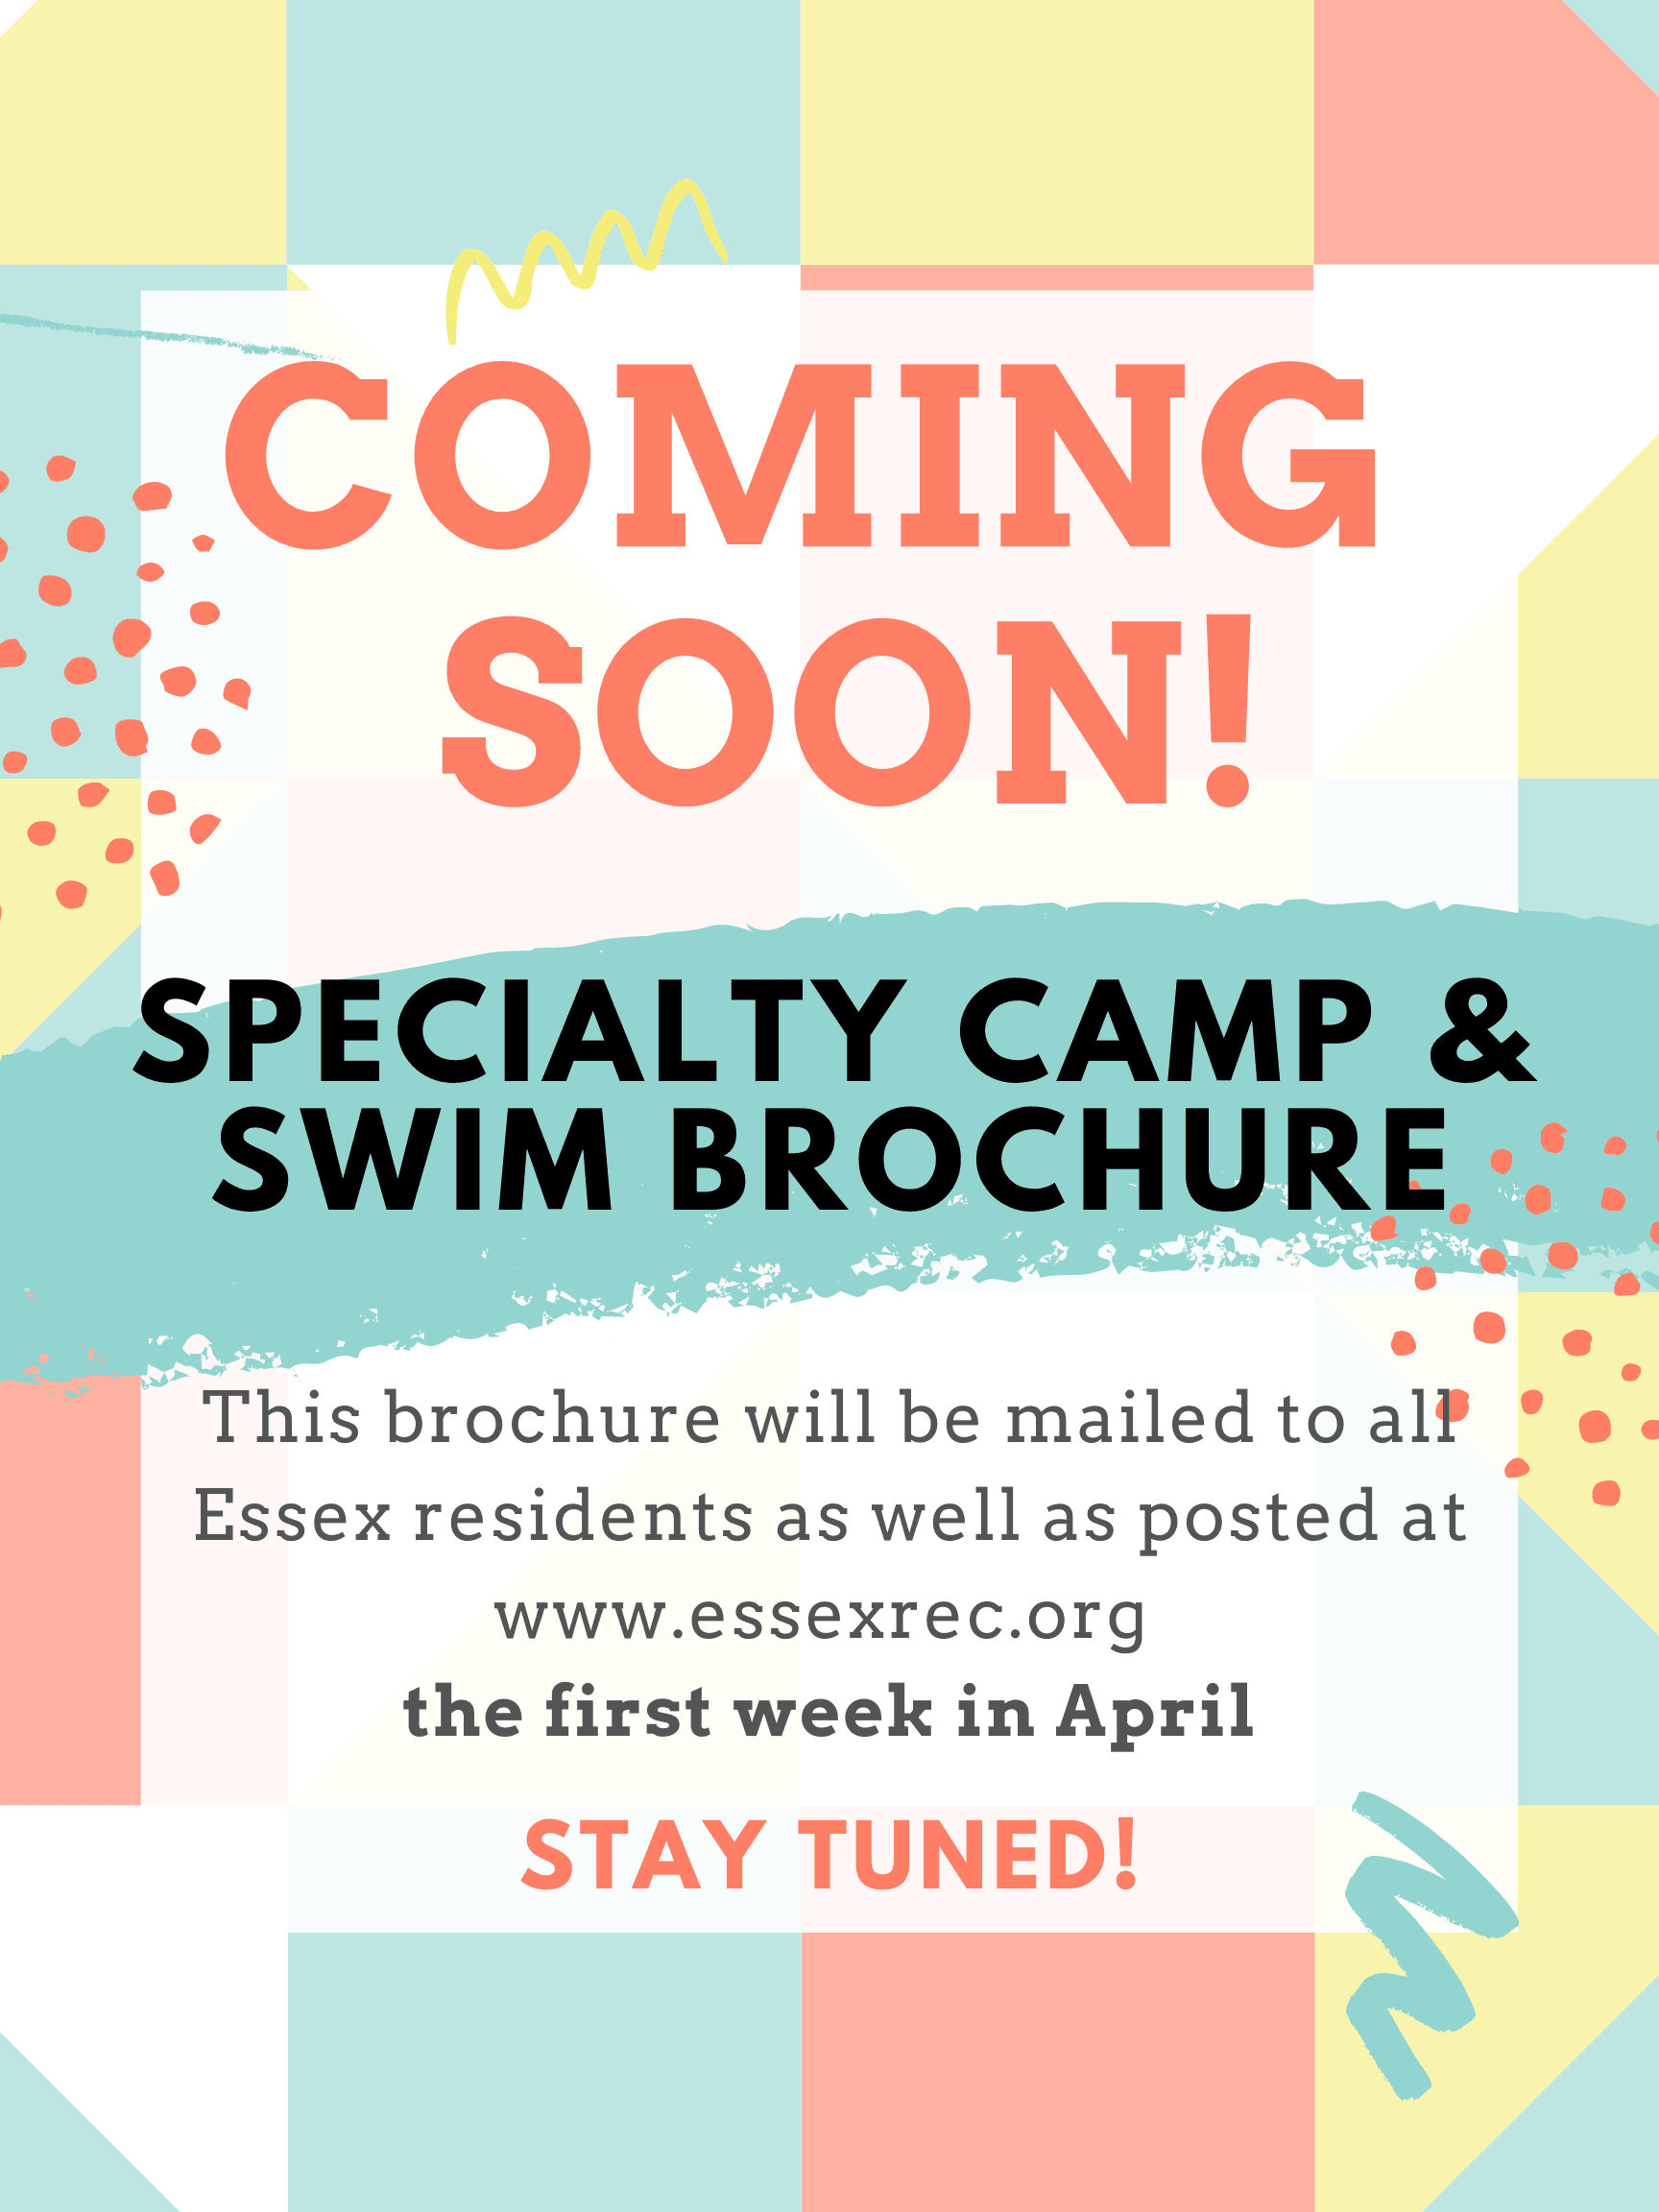 Specialty Camps & Swim Brochure coming soon!